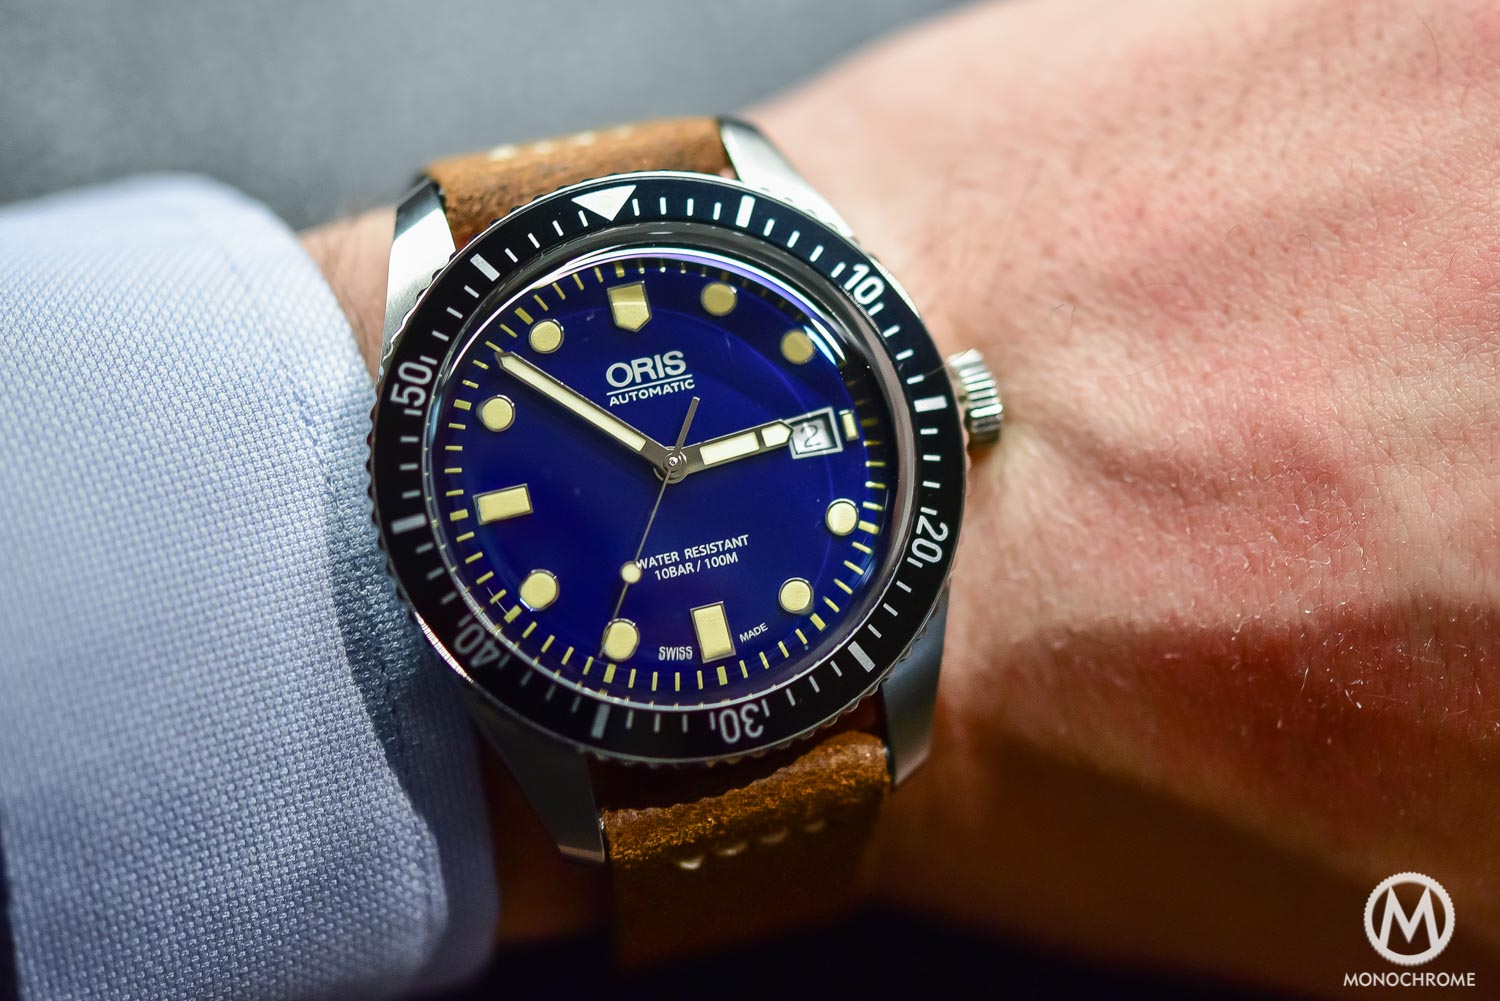 Introducing – Oris Divers Sixty Five, now in 42mm, with Blue Dial and Riveted Bracelet (hands-on with live photos & price)